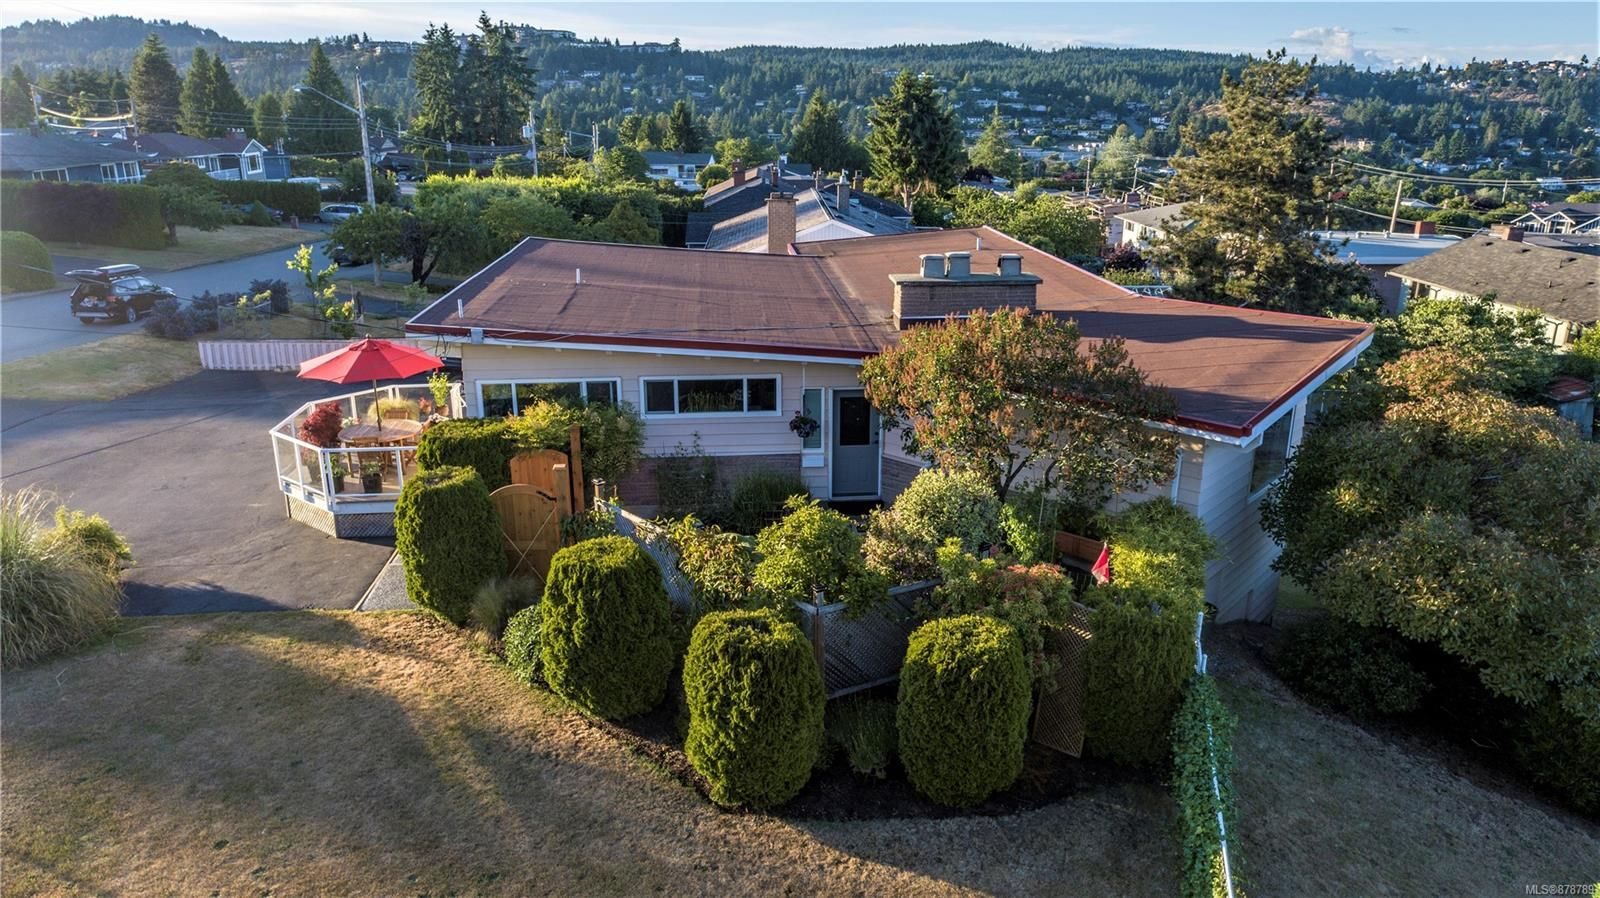 Amazing ocean views .. and not a cookie cutter home in a cookie cutter location - This is a unique and appealing home with many stunning features and just a few blocks to Departure Bay beach